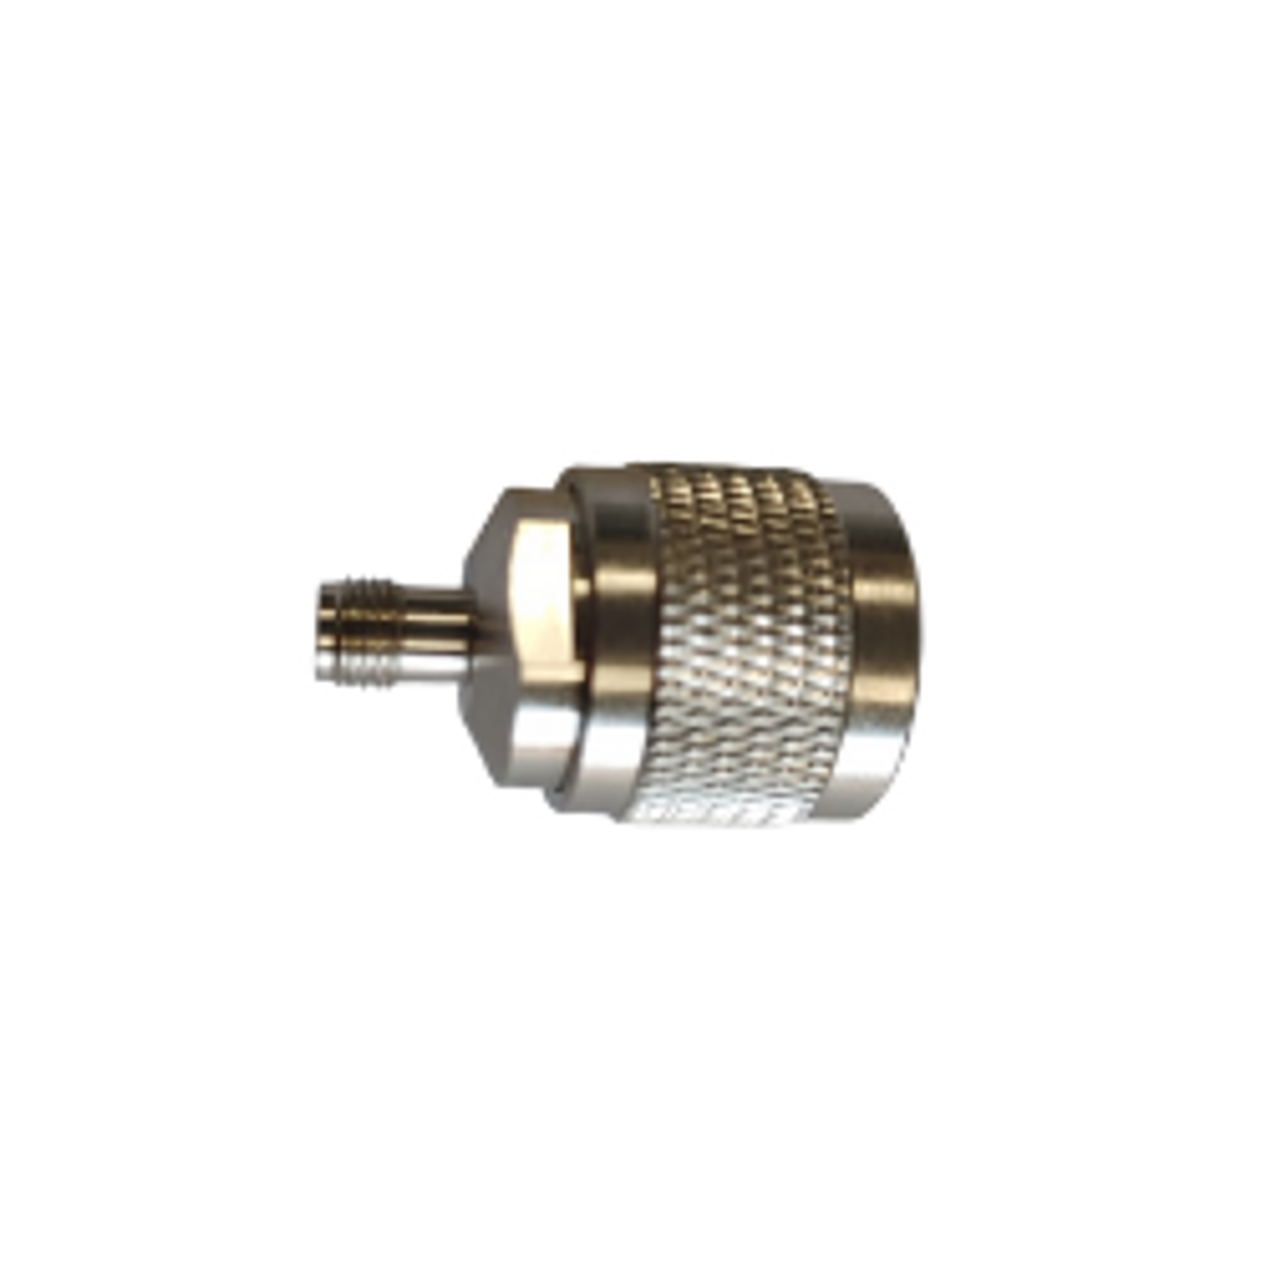 Bolton Barrel Connector - N-Male to SMA-Female side view